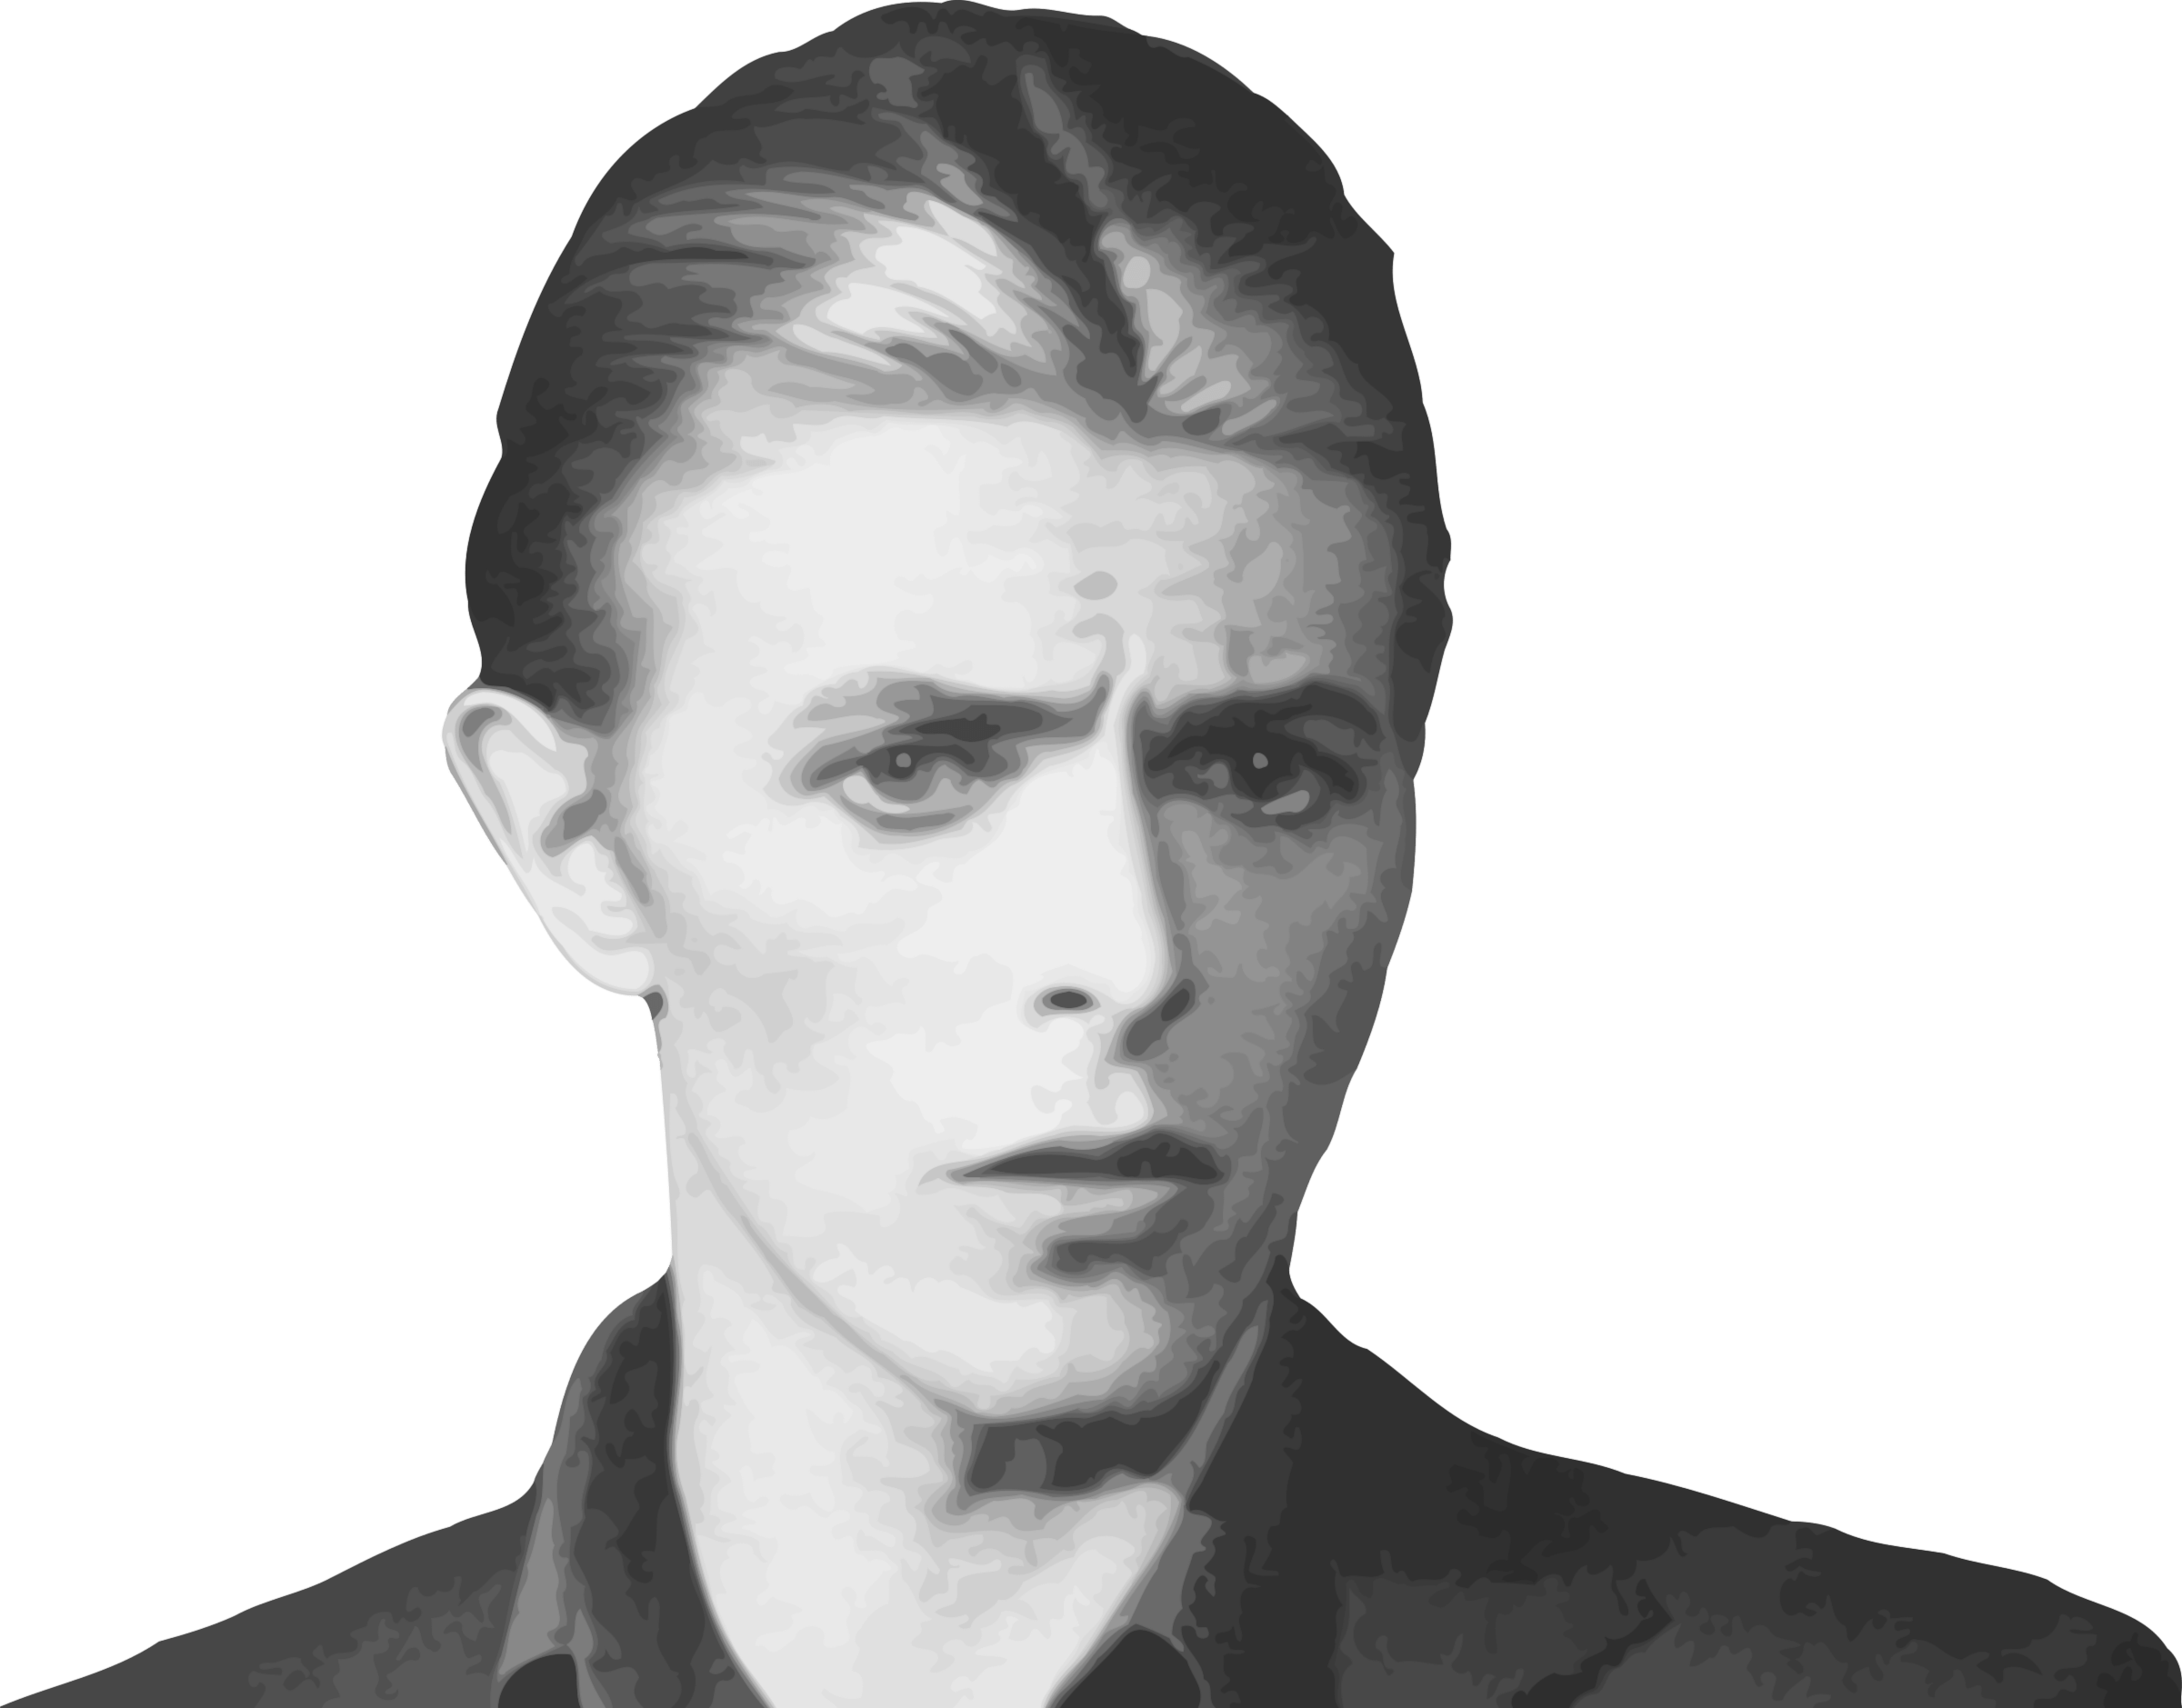 David Bowie B&w transparent PNG.